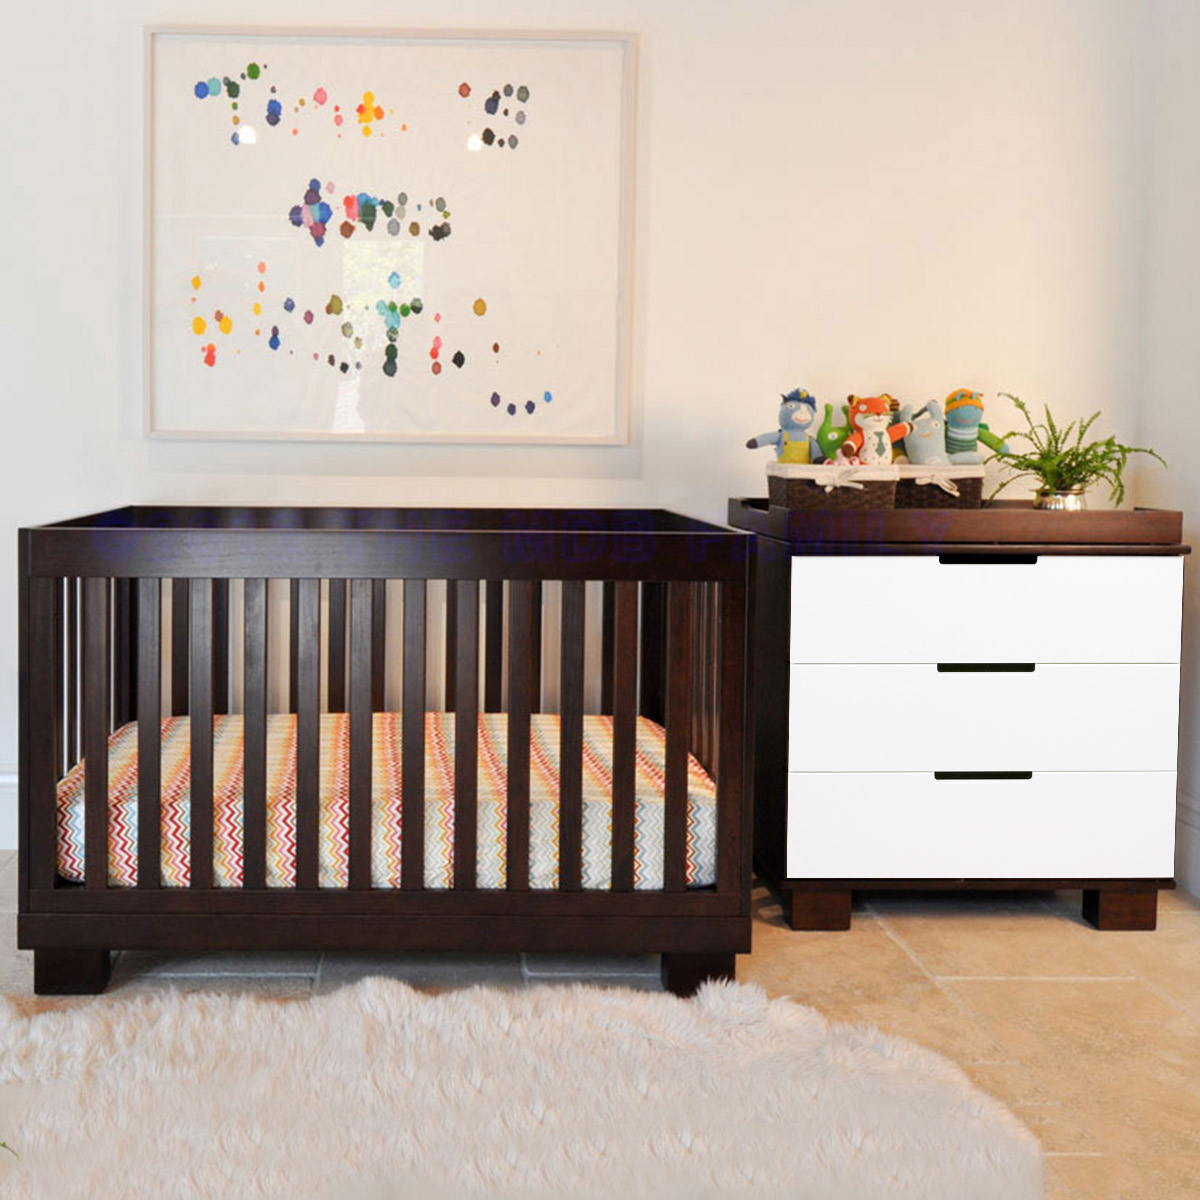 Attractive Modern Babyletto 2 Piece Nursery Set   Modo 3 In 1 Two Tone Crib And  Espresso 3 Drawer Dresser/Changer Set FREE SHIPPING